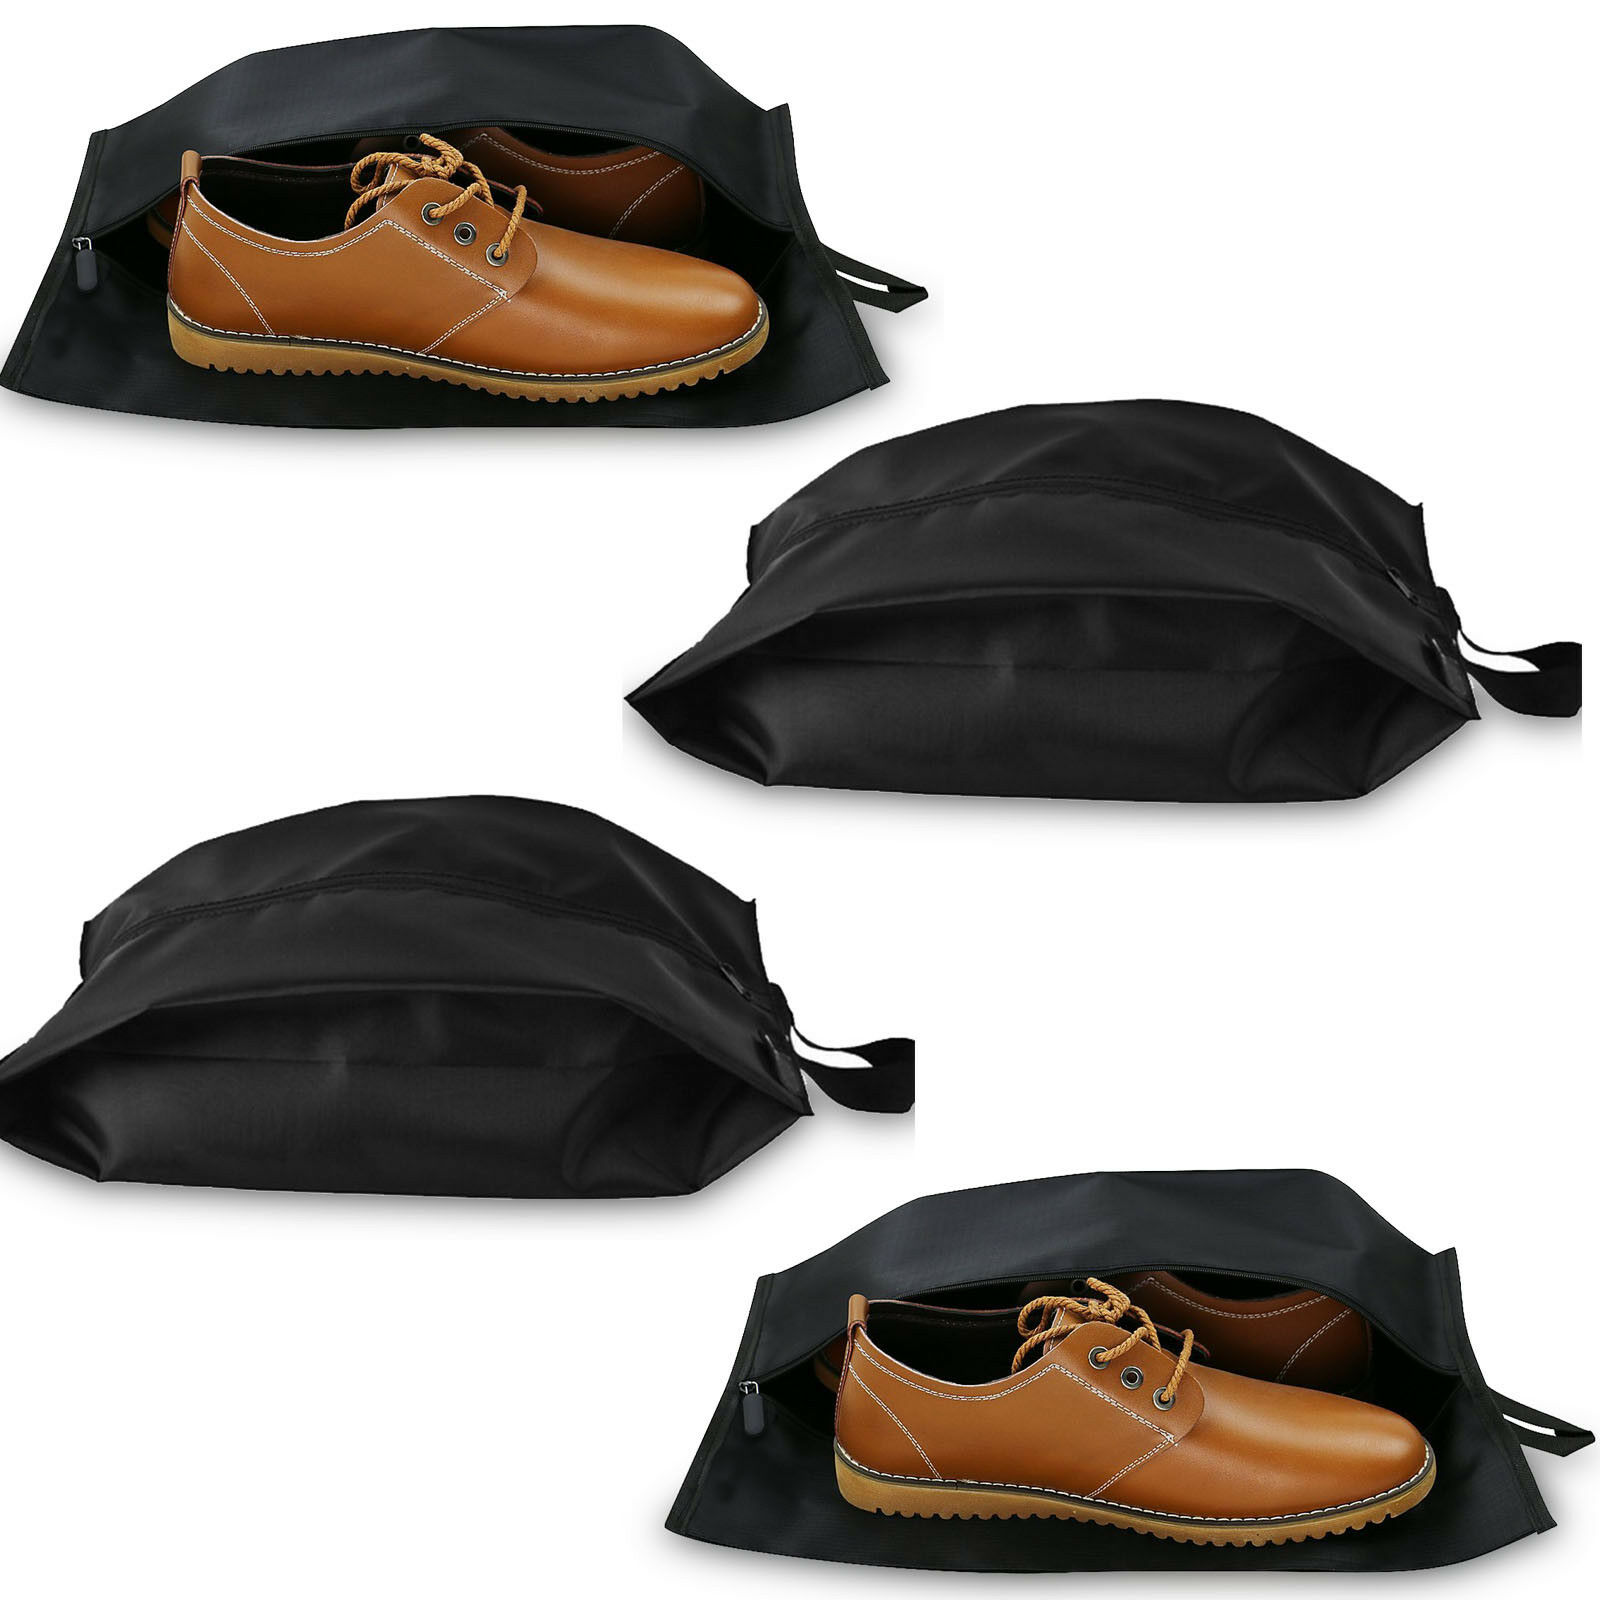 BLK Portable Travel shoes Bags Storage Case with Zipper Closure 13.77.55.5inch